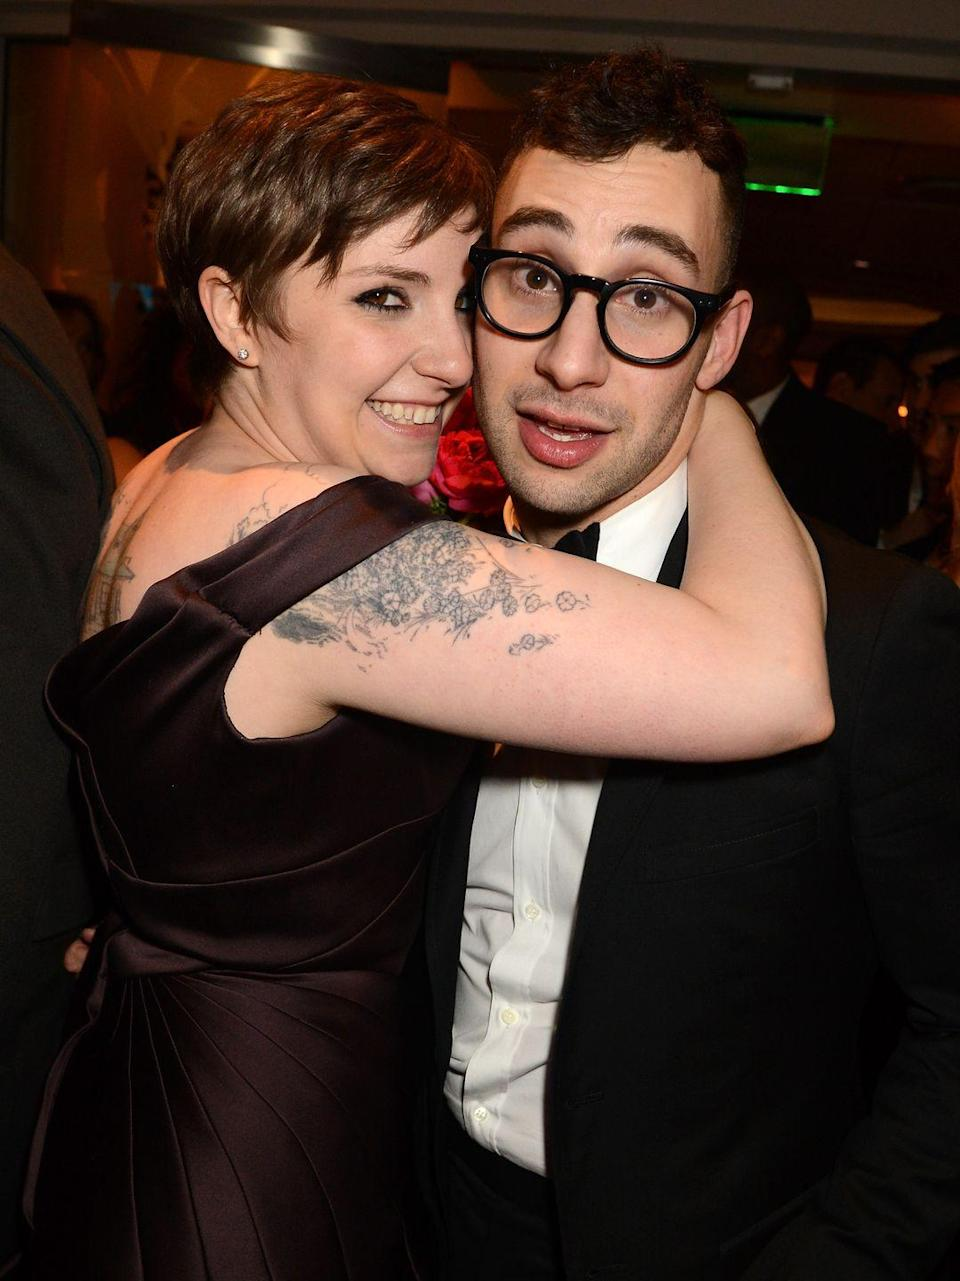 "<p>Jack Antonoff's sister, Rachel, and comedian Mike Birbiglia set the couple up. </p><p>""It was a blind date by modern standards. I mean, I used the internet,"" Antonoff explained to <a href=""http://www.vulture.com/2014/06/jack-antonoff-solo-album-bleachers.html?mid=nymag_press"" rel=""nofollow noopener"" target=""_blank"" data-ylk=""slk:Vulture"" class=""link rapid-noclick-resp"">Vulture</a>. ""[On the date] I told Lena everything about my whole life, because when you really like someone, you want them to know everything about you."" The pair split in early 2018 after five years together.</p>"